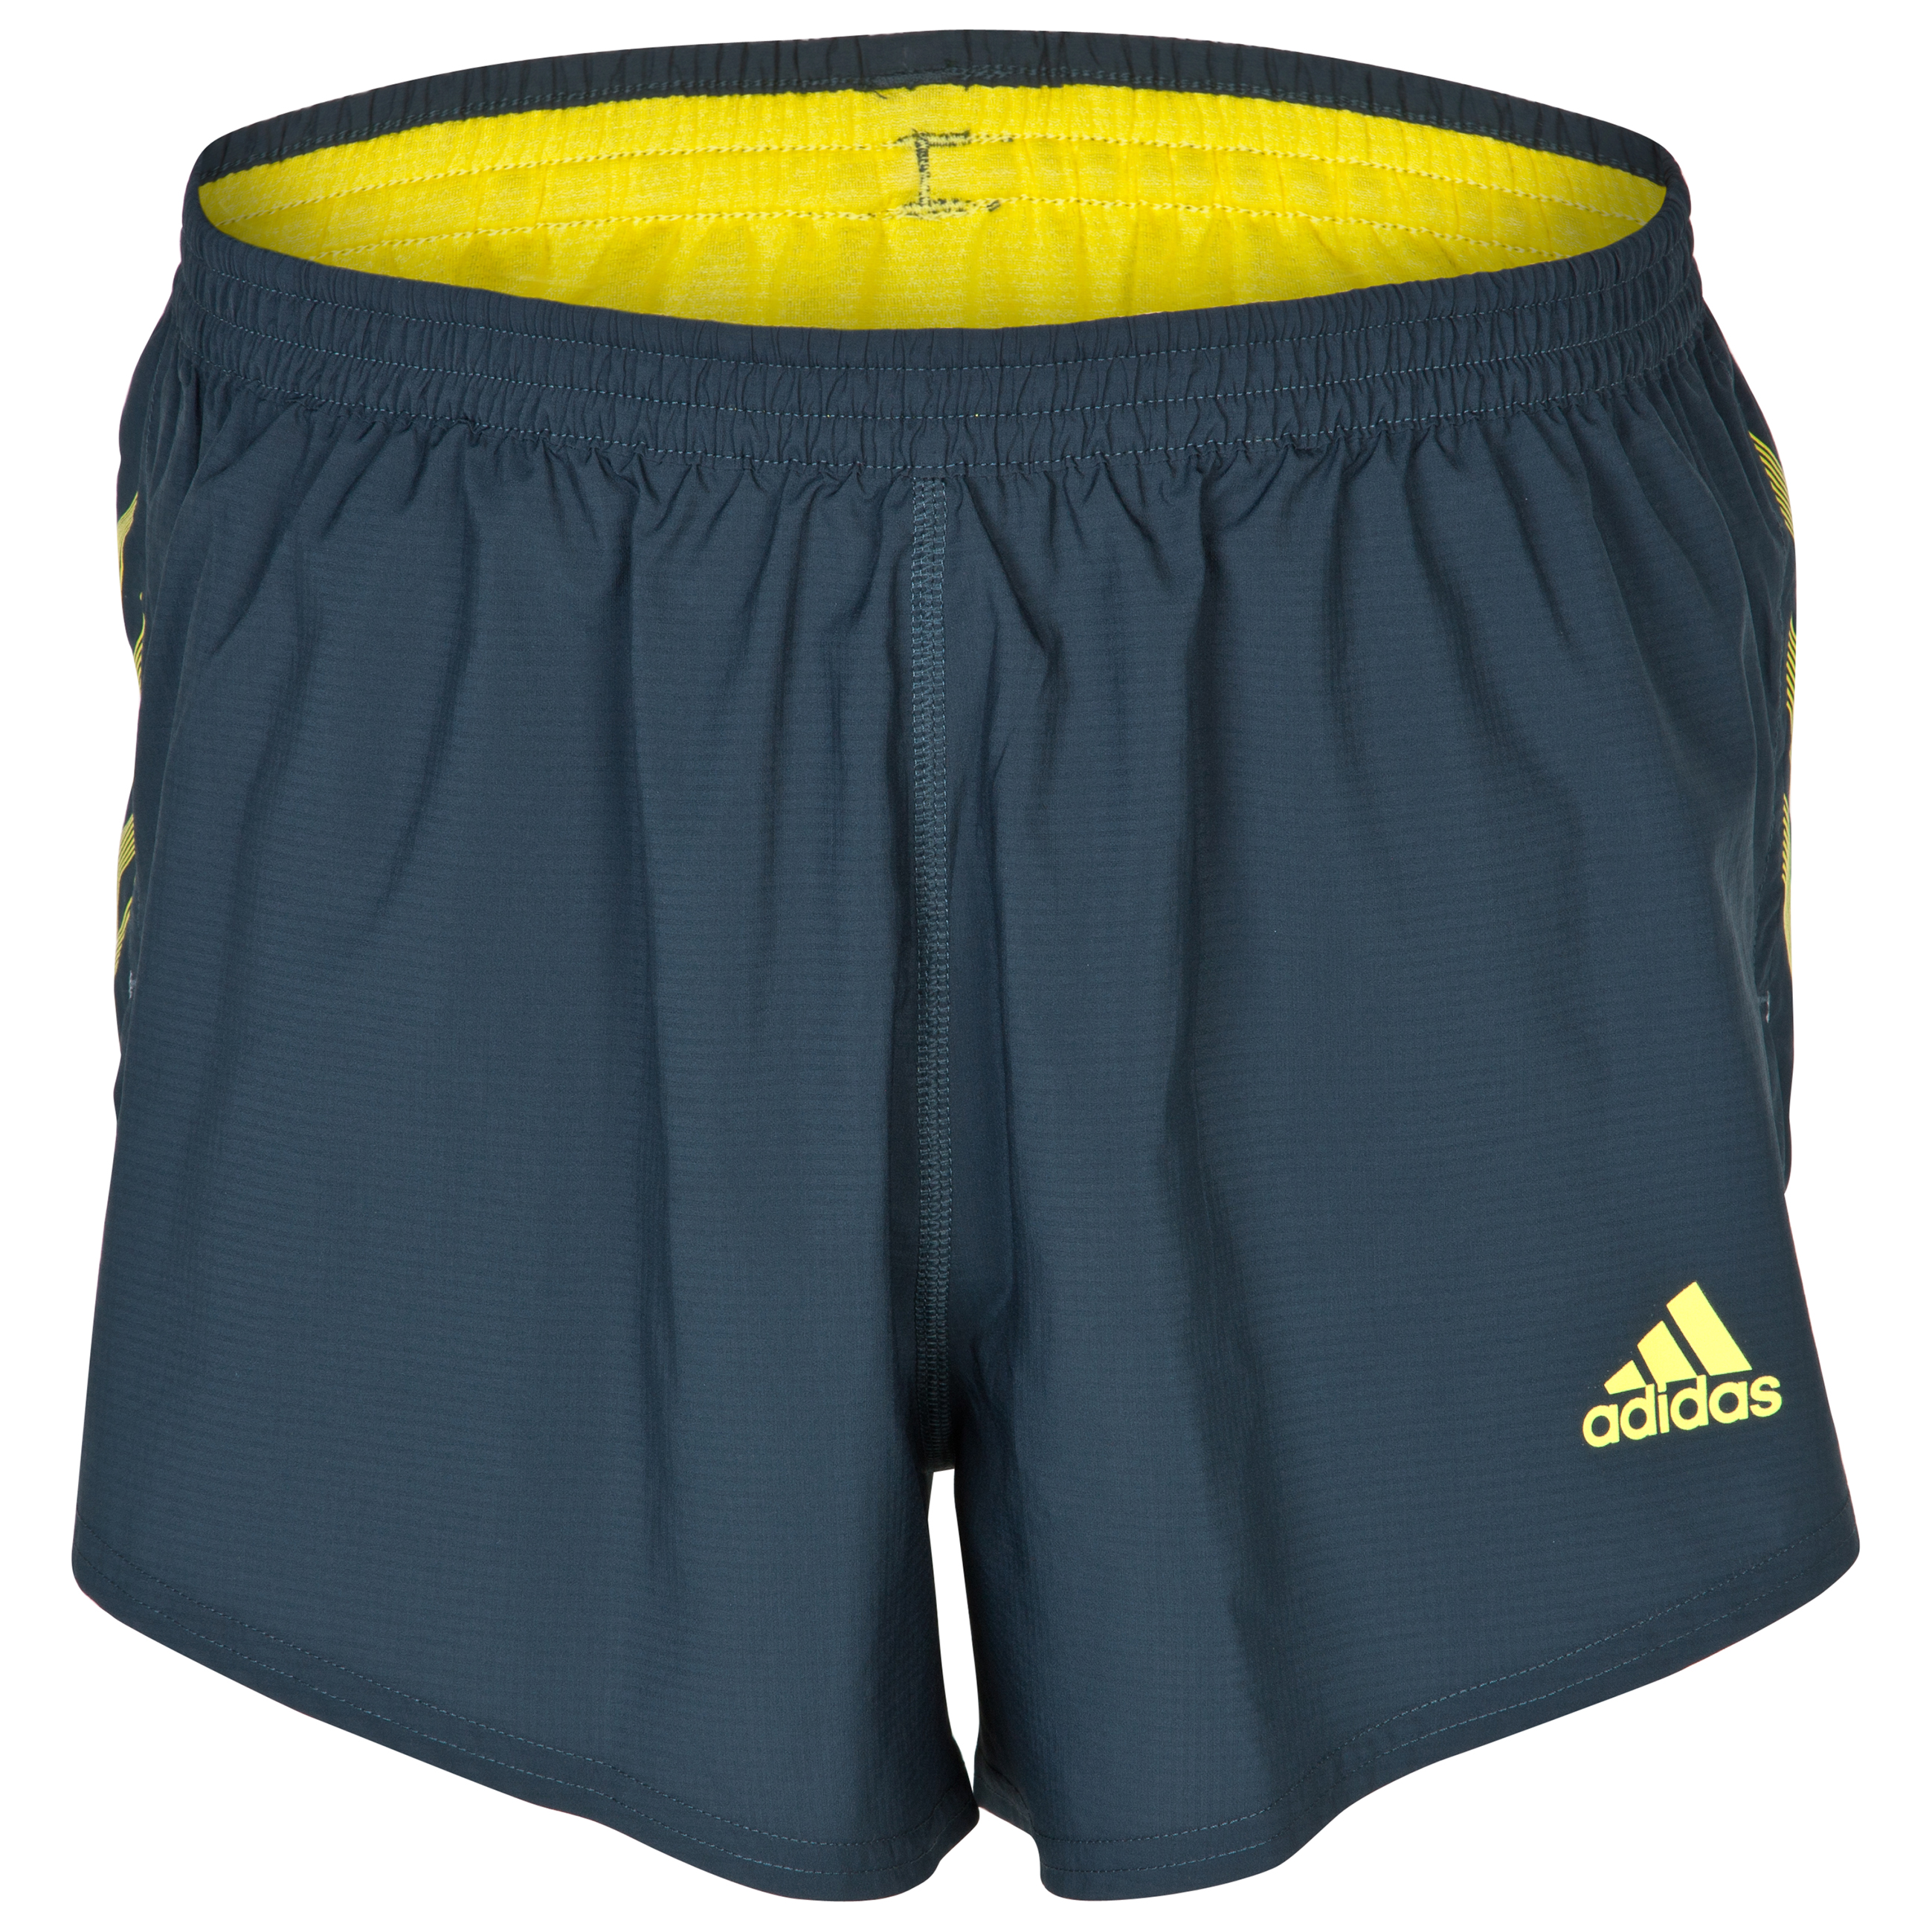 Adidas Adizero Split Shorts - Tech Onix/Vivid Yellow